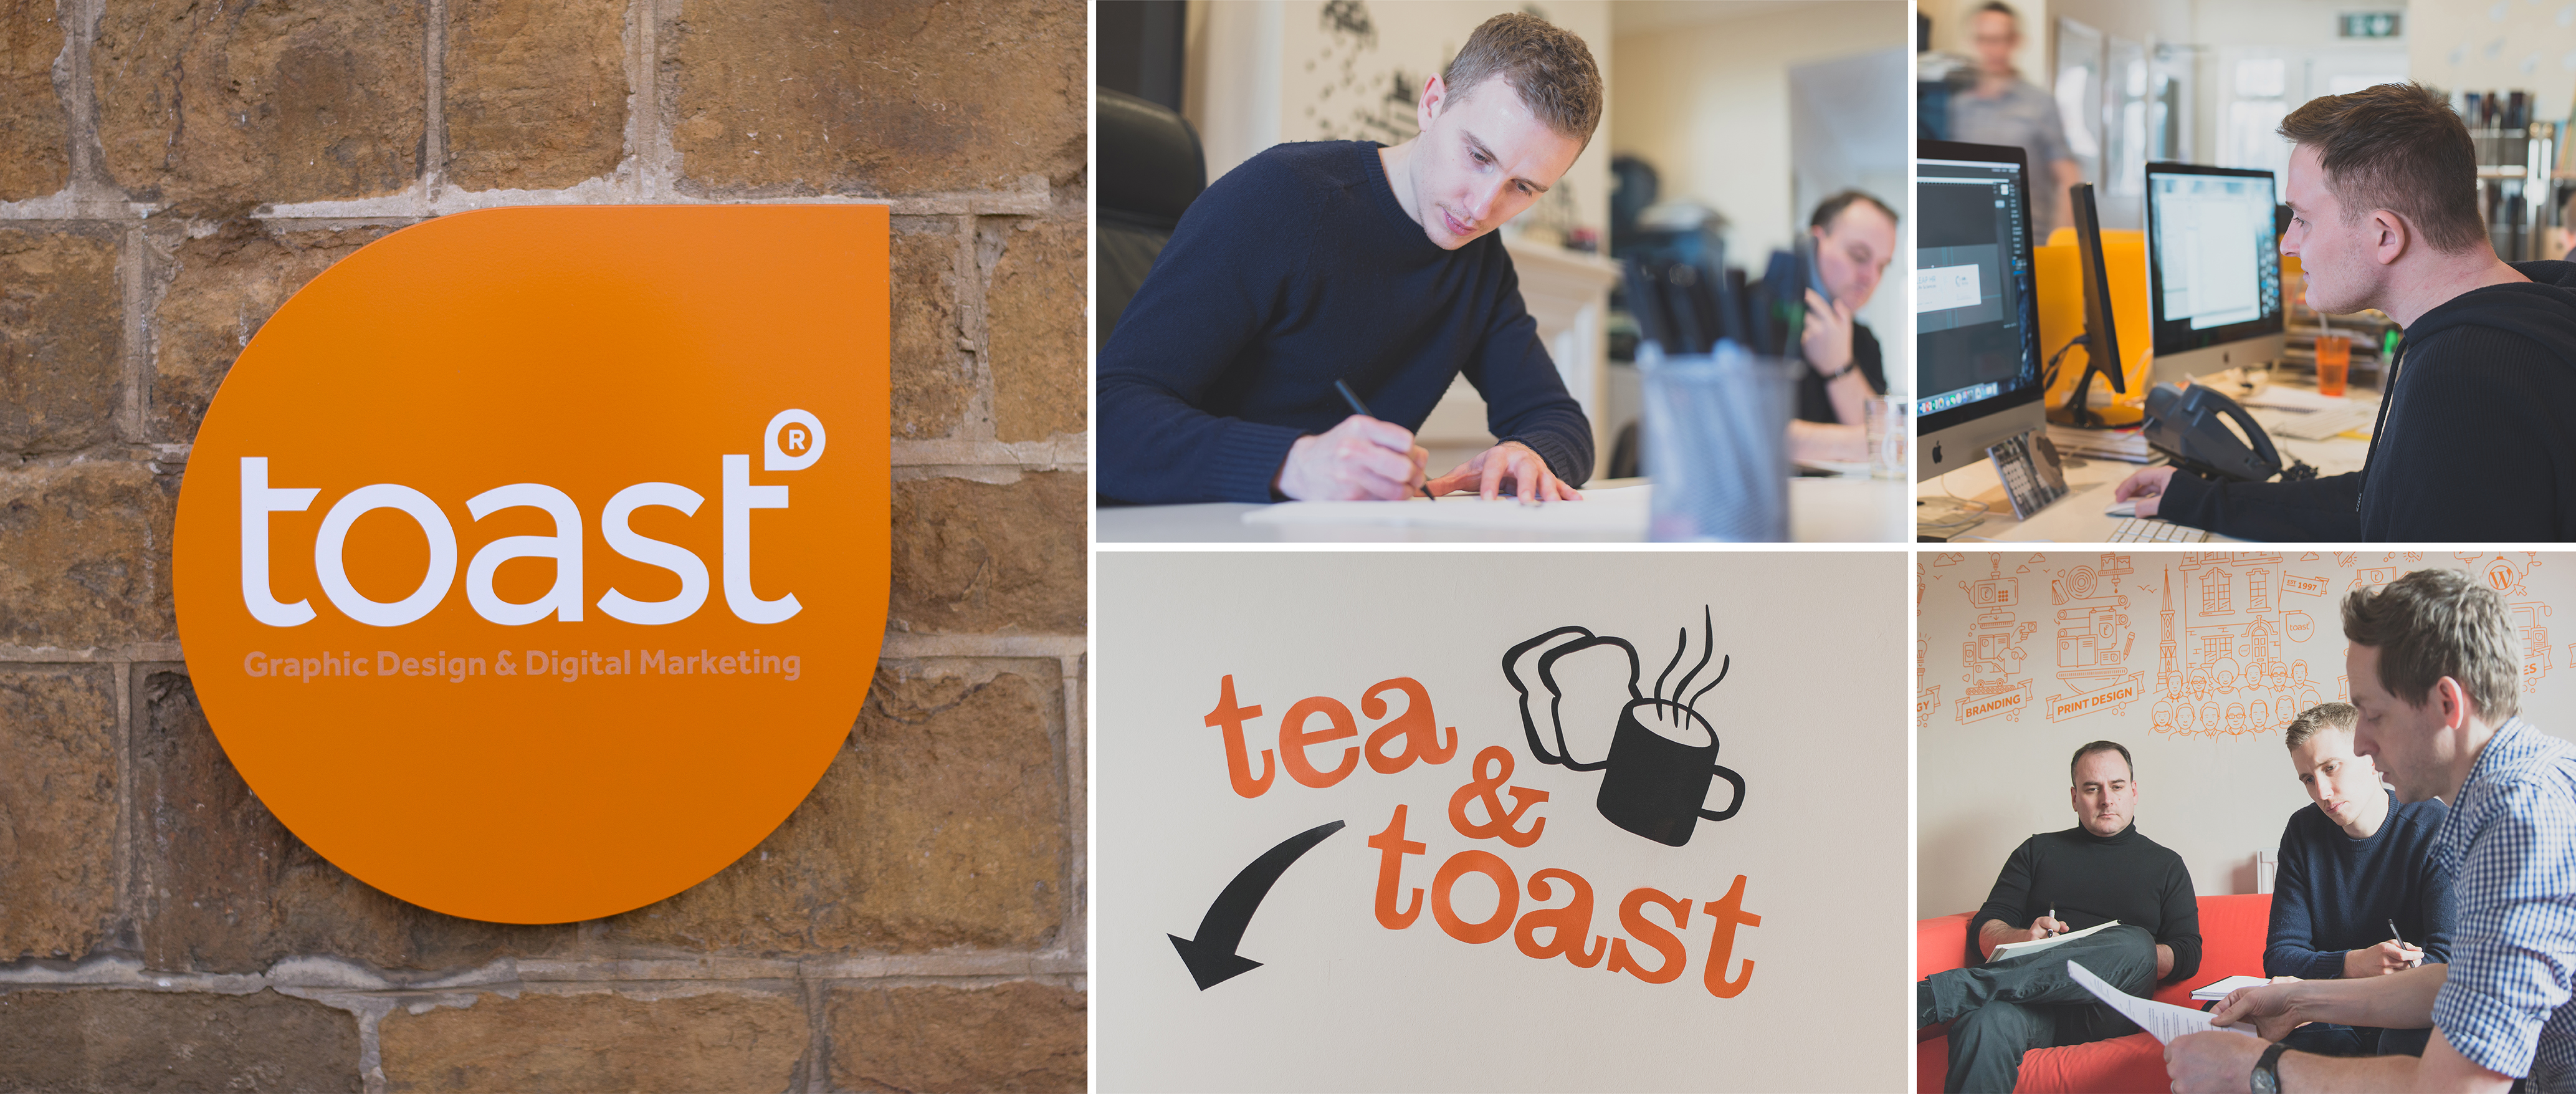 About Toast Food, Food branding and packaging specialists.